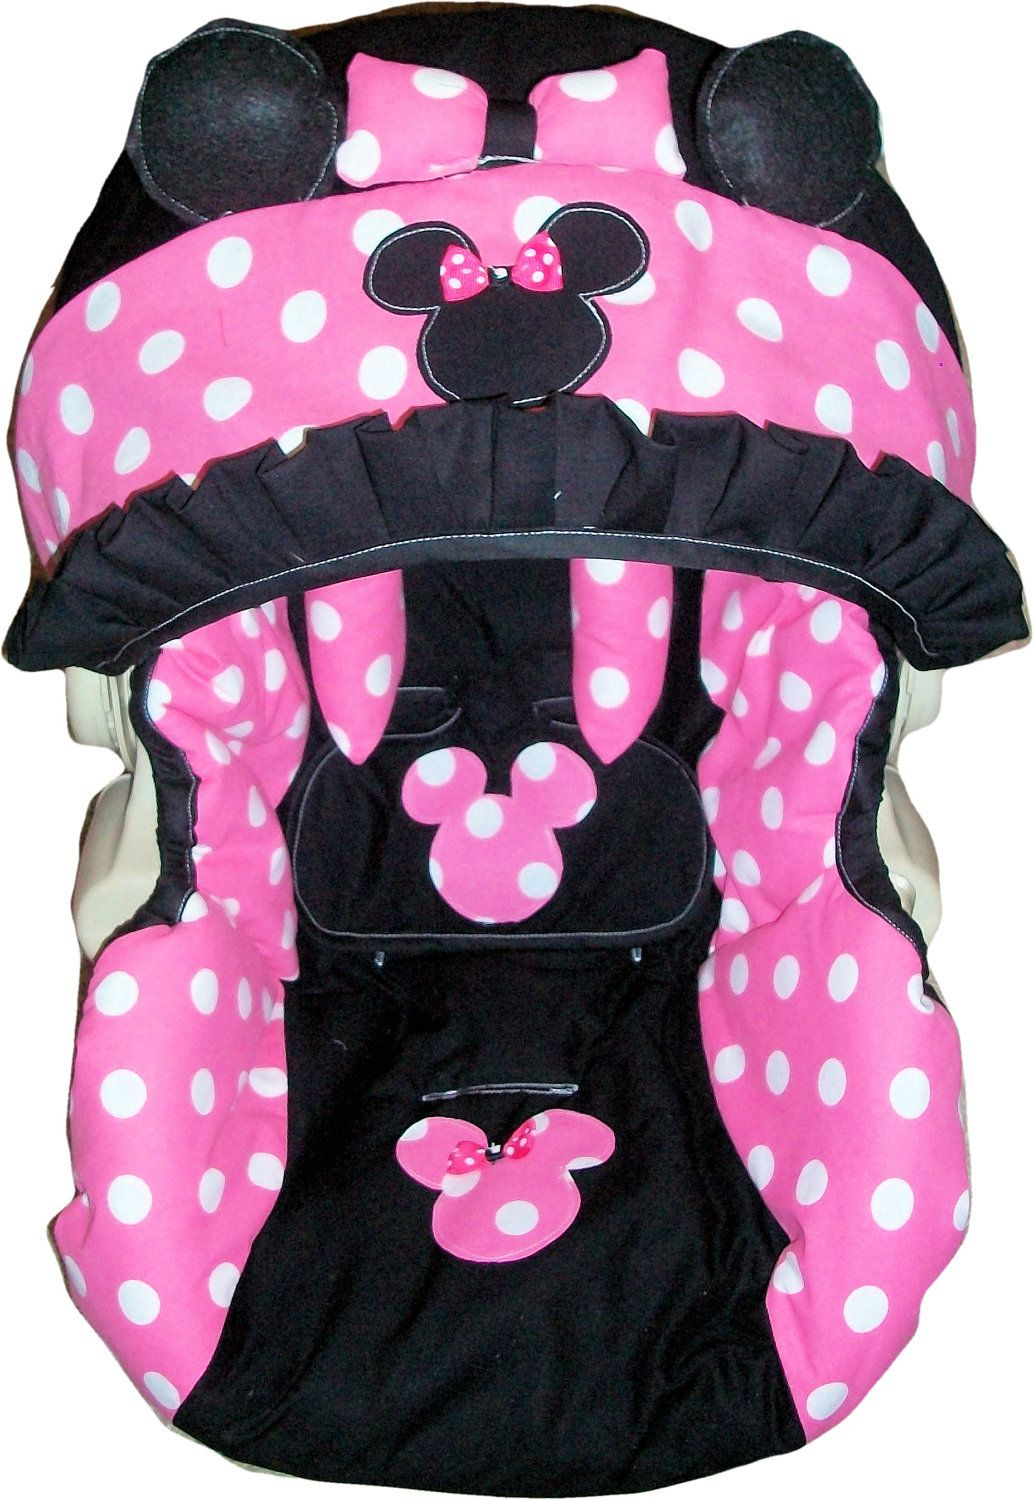 spot dot polka cotton fleece baby pram//buggy//car seat harness strap cover pads